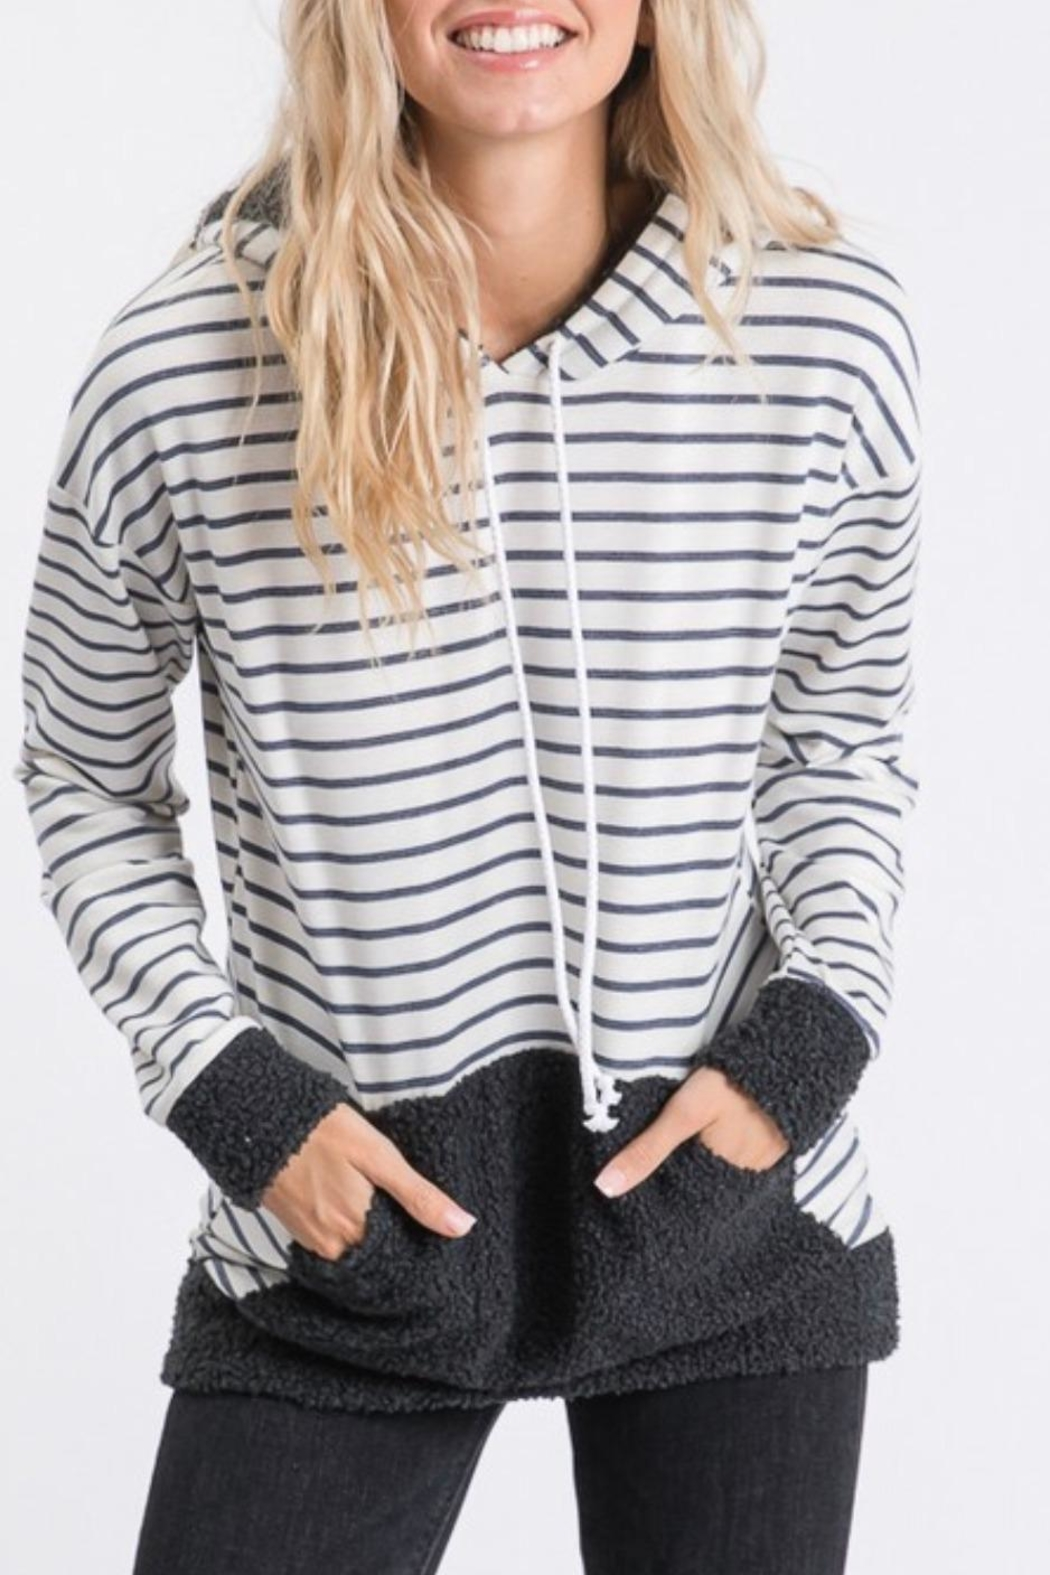 7th Ray Stripe Hooded Sweater - Main Image